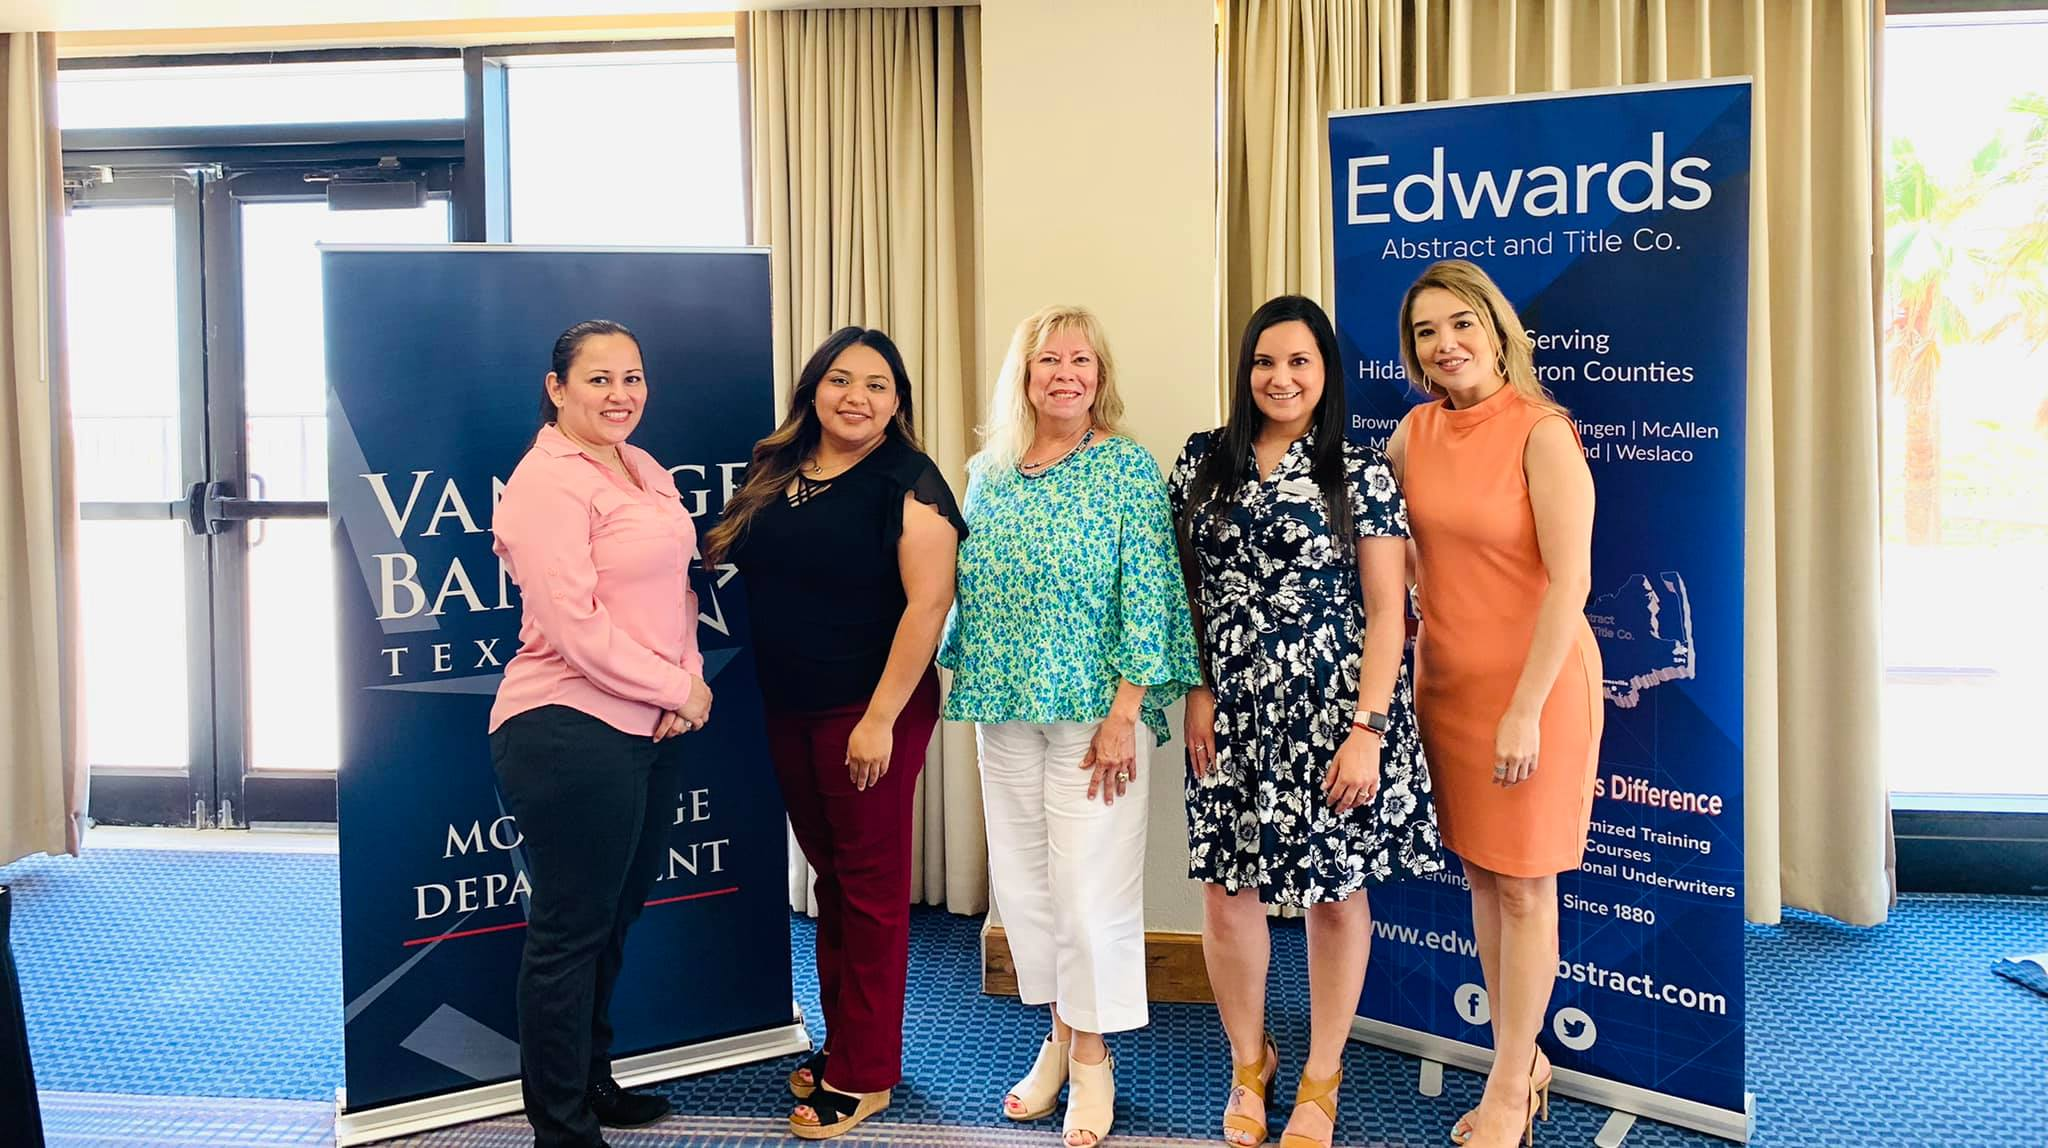 Edwards SPI & Vantage Bank Showcase Latest Products and Services